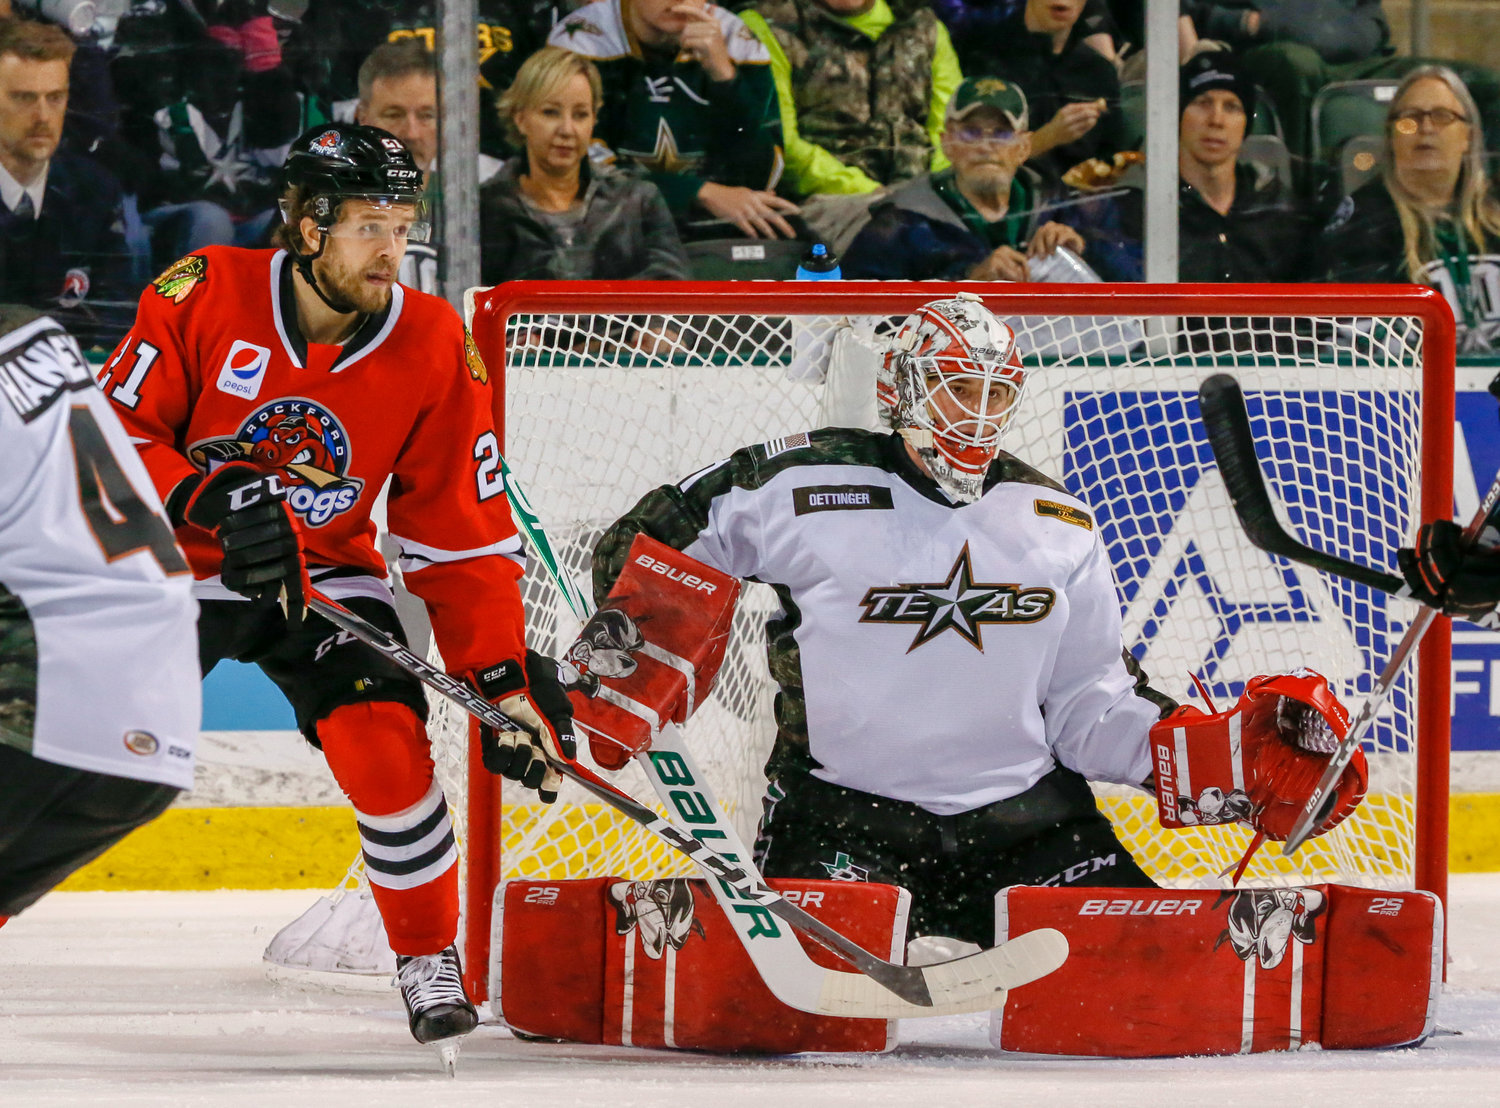 Jake Oettinger made 23 saves in his first start at the HEB Center in the Stars' 2-1 shootout win over the IceHogs on Friday night. Texas is on the outside of the playoffs looking in with three games left in the regular season.